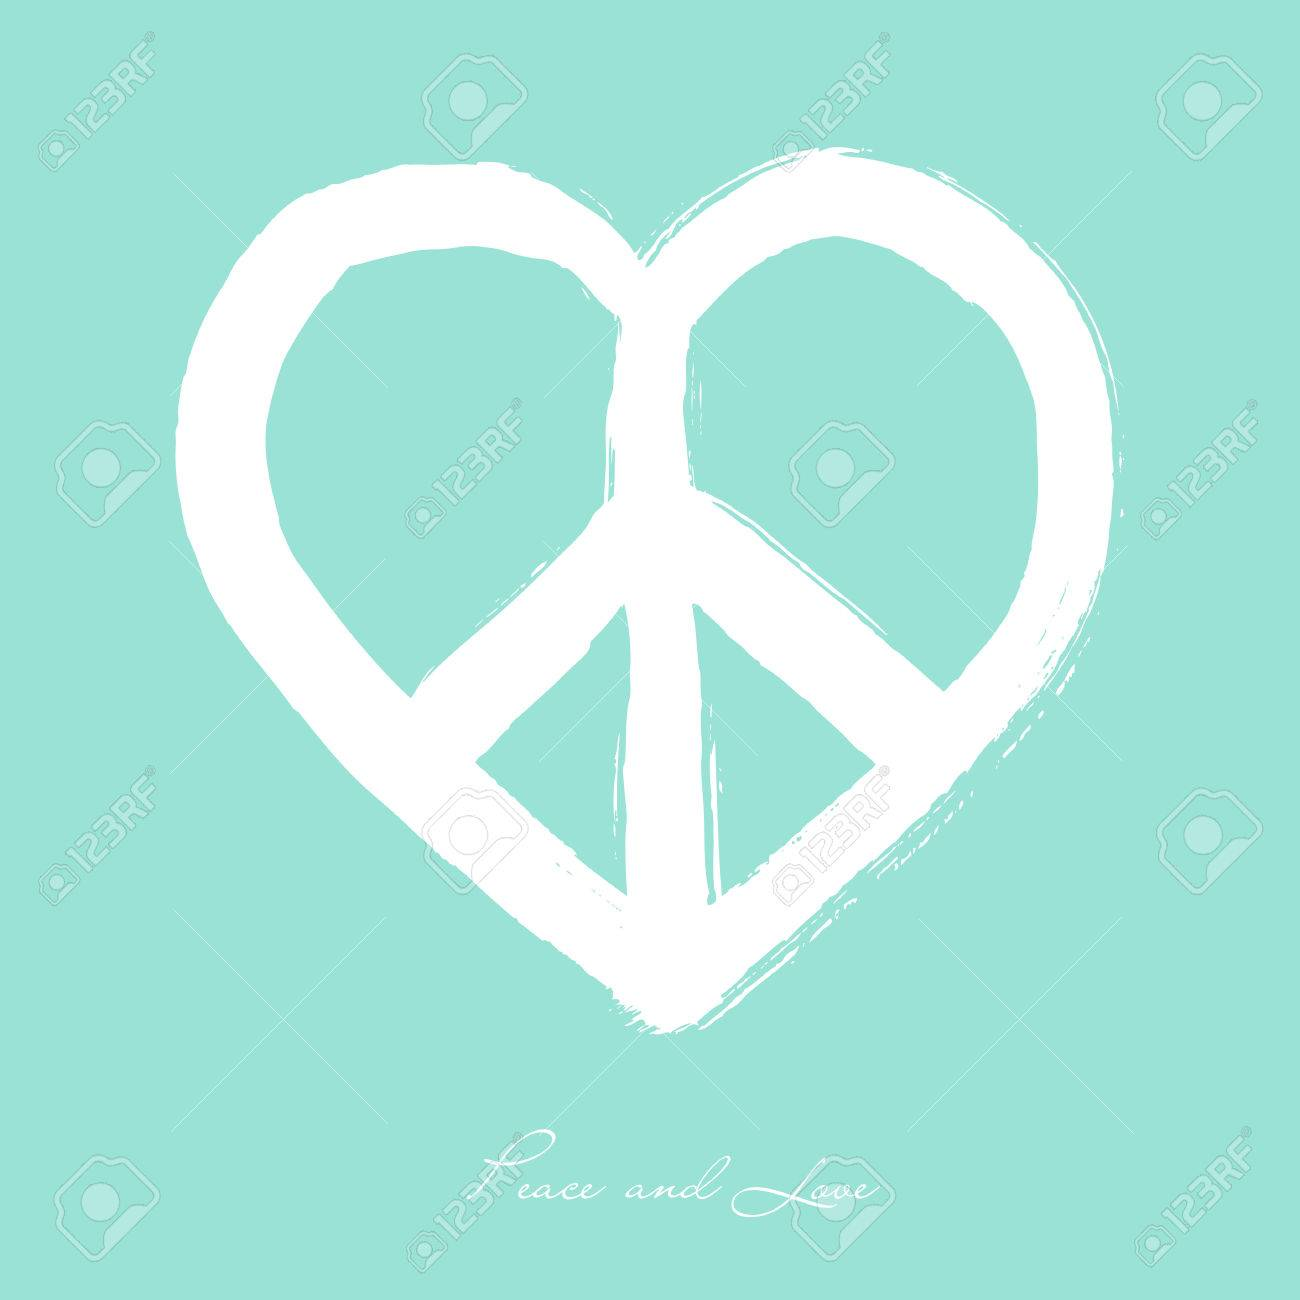 Isolated Heart Shape Peace Symbol Brush Style Composition Over